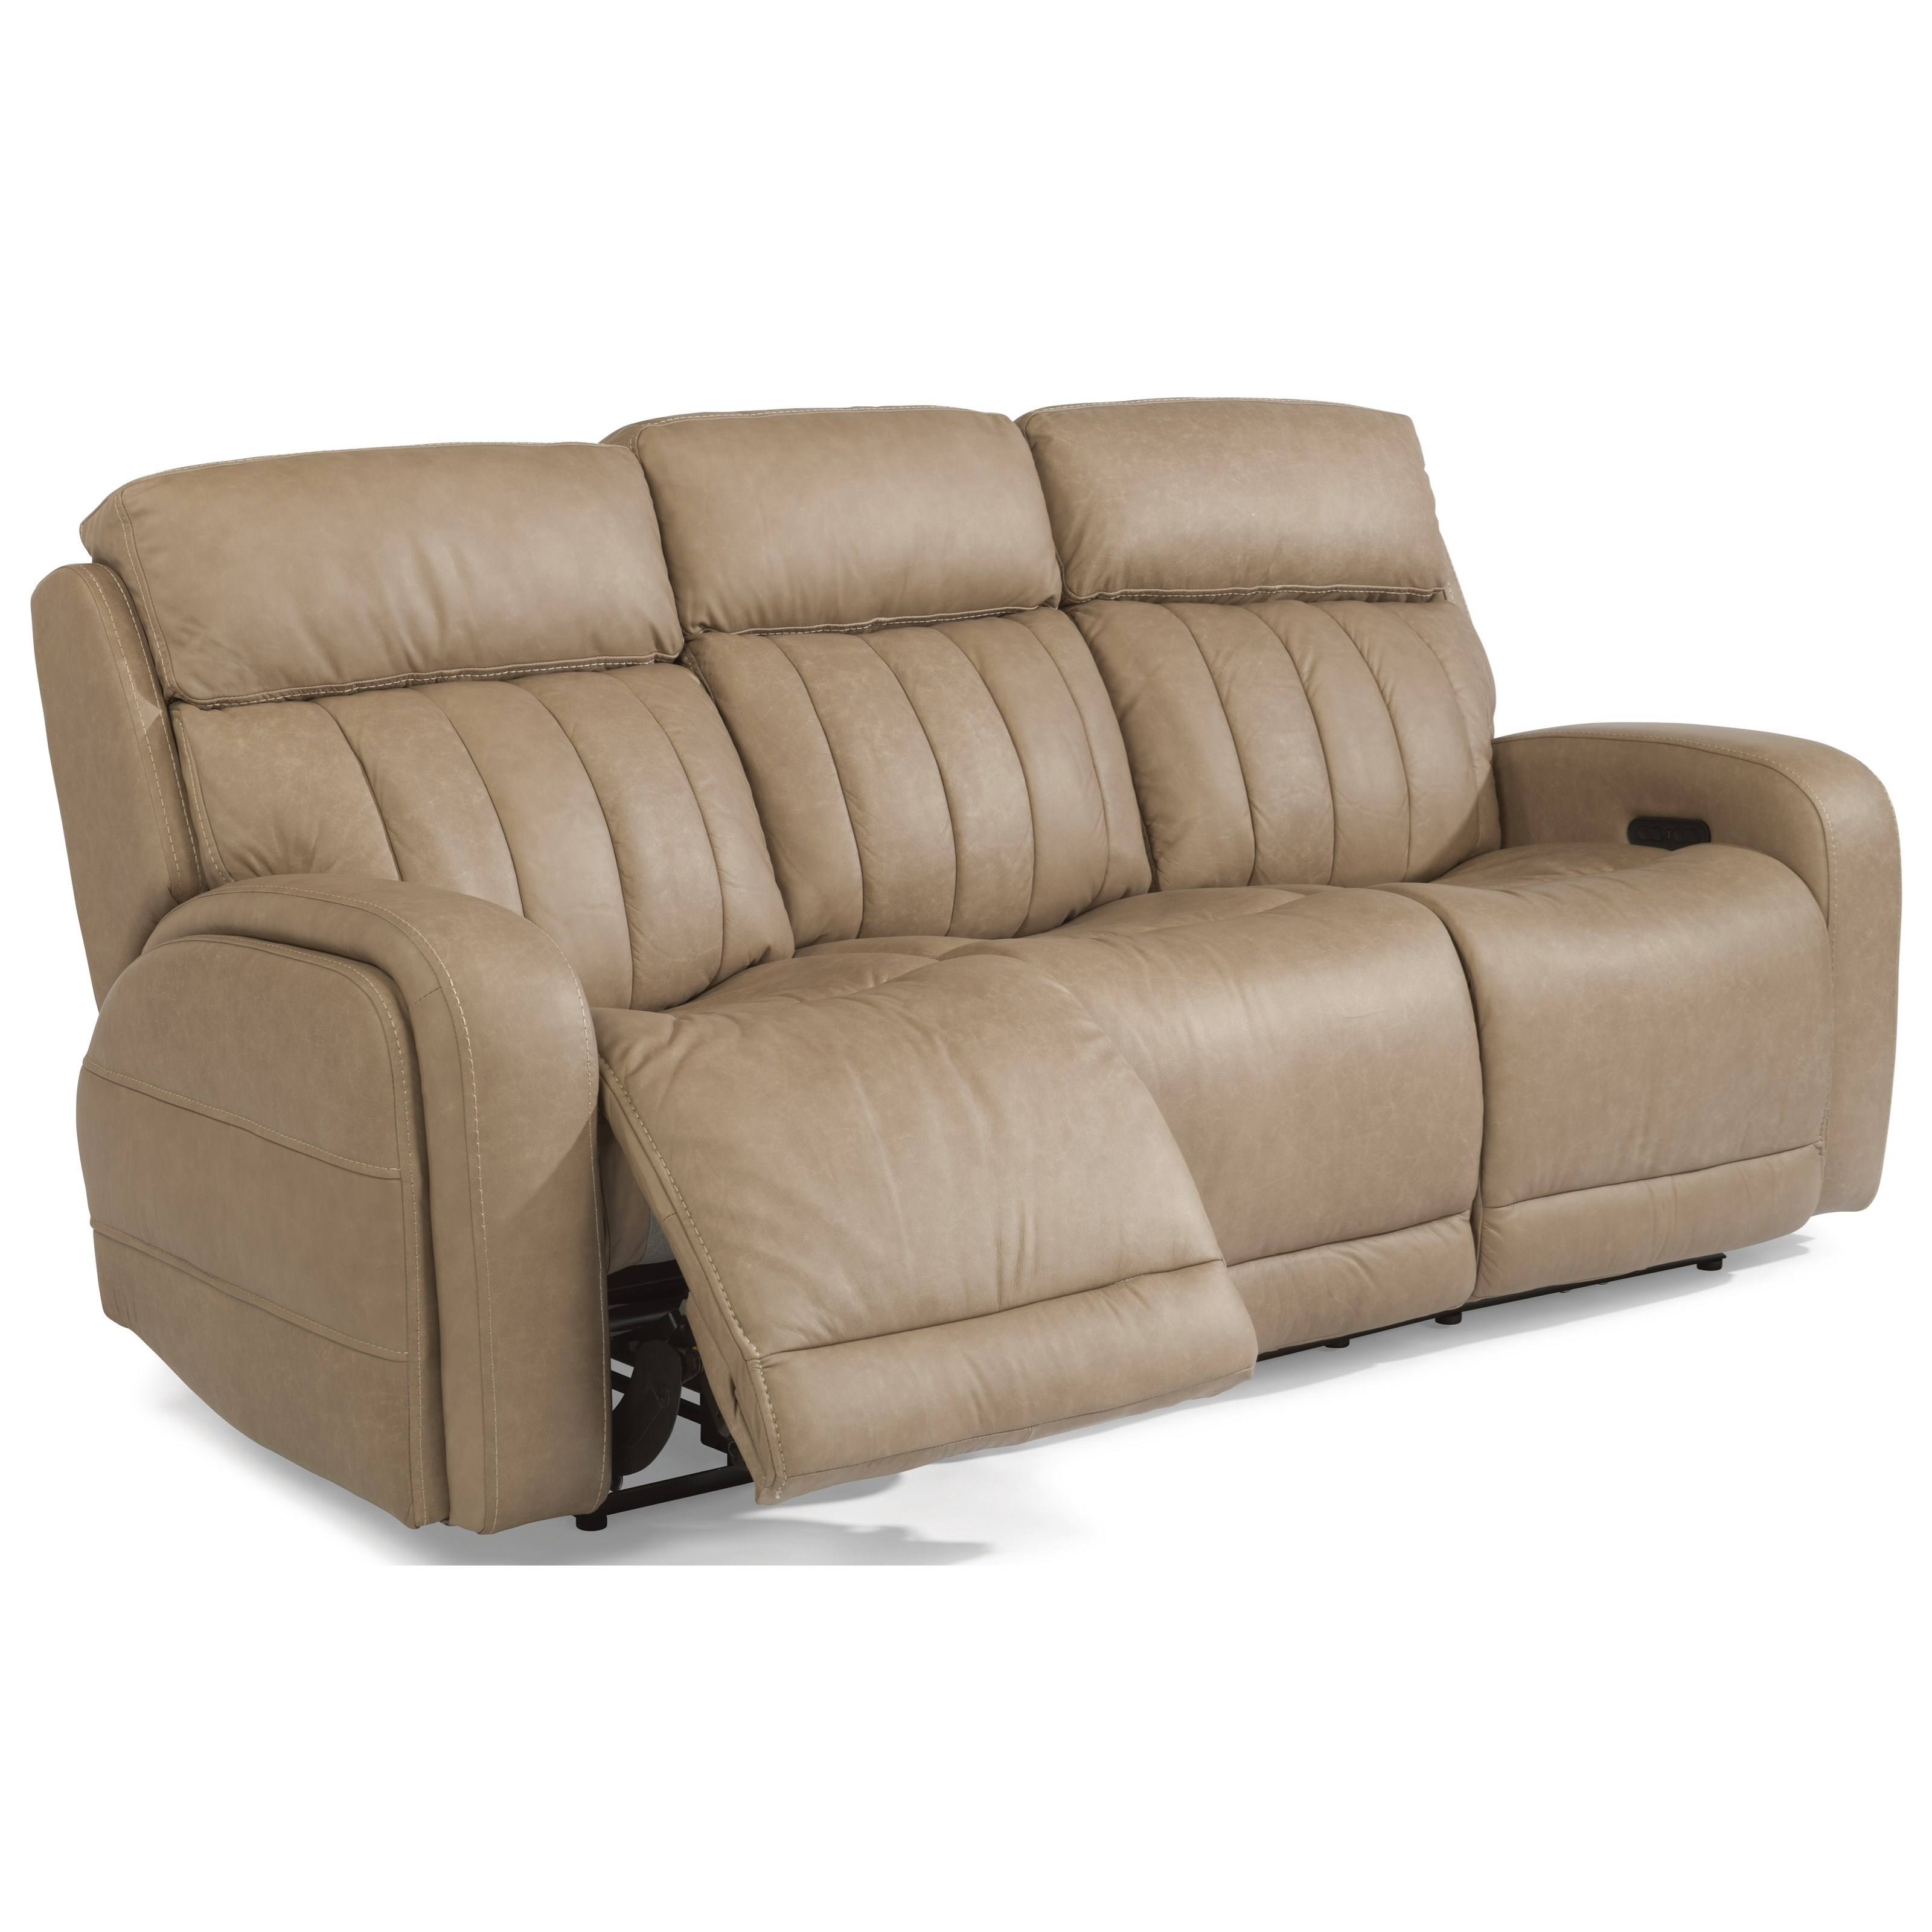 Flexsteel Latitudes Danvers Casual Power Reclining Sofa with Power